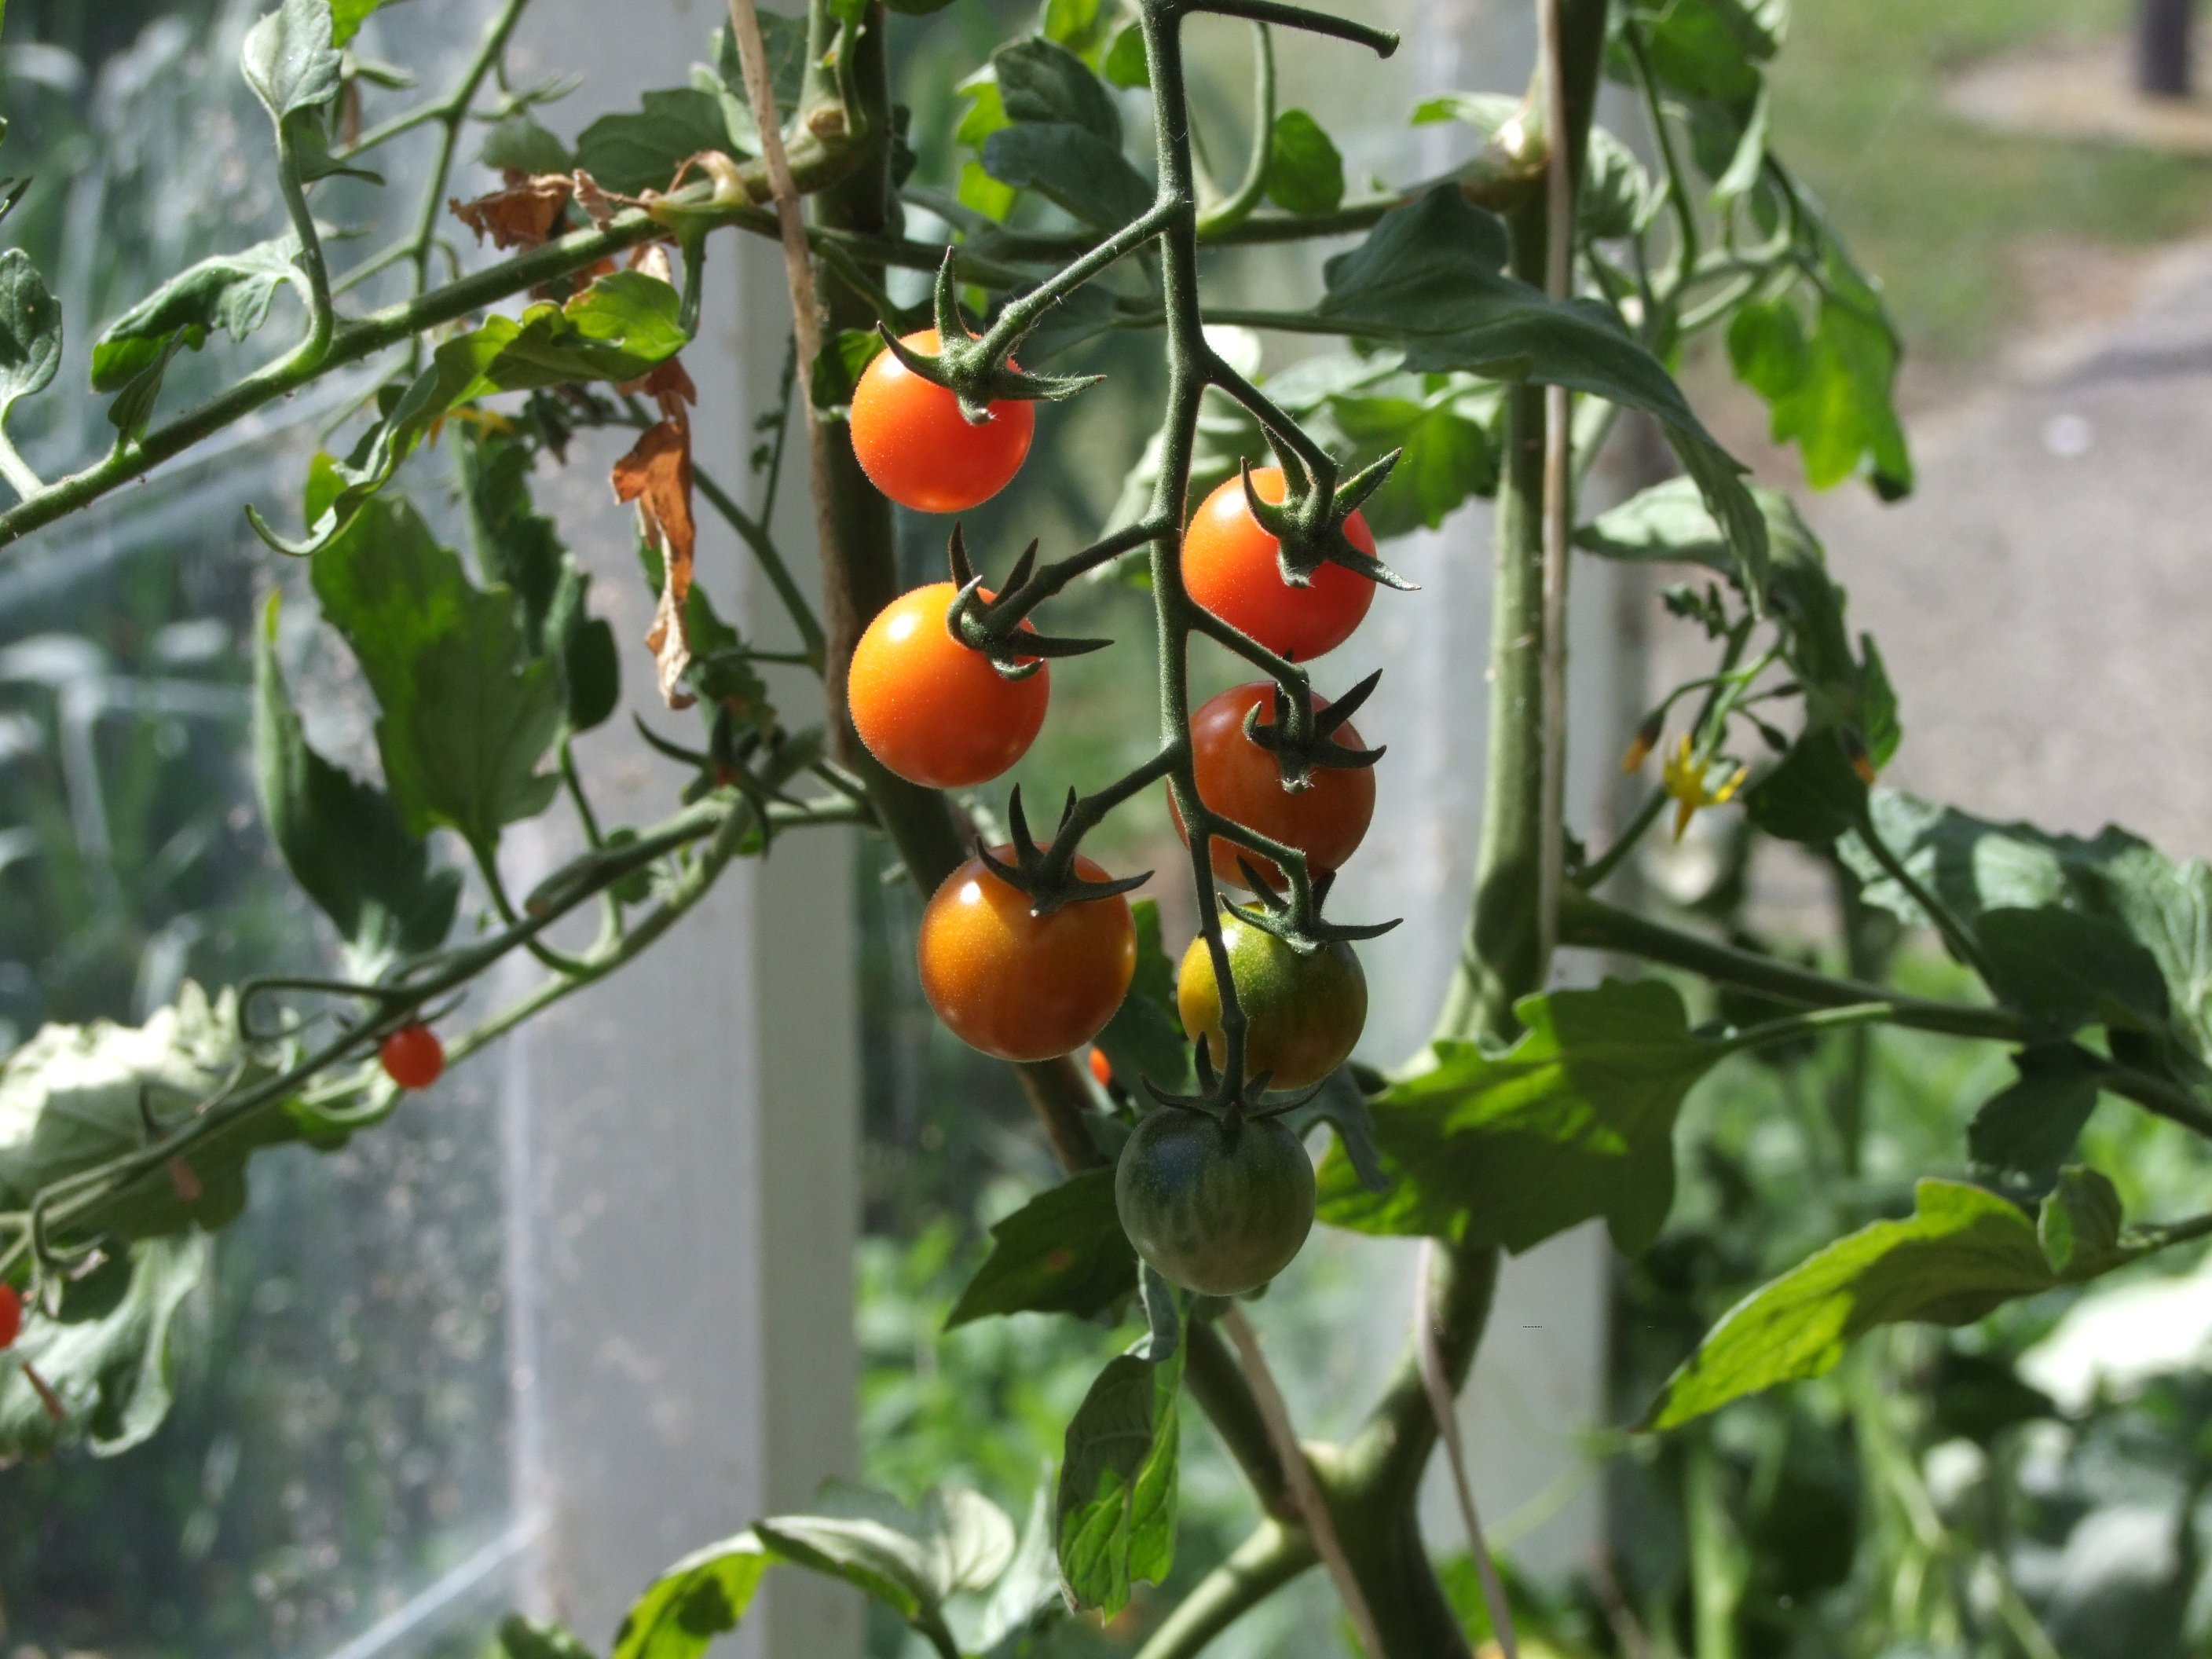 Planting in the greenhouse | Otago Daily Times Online News